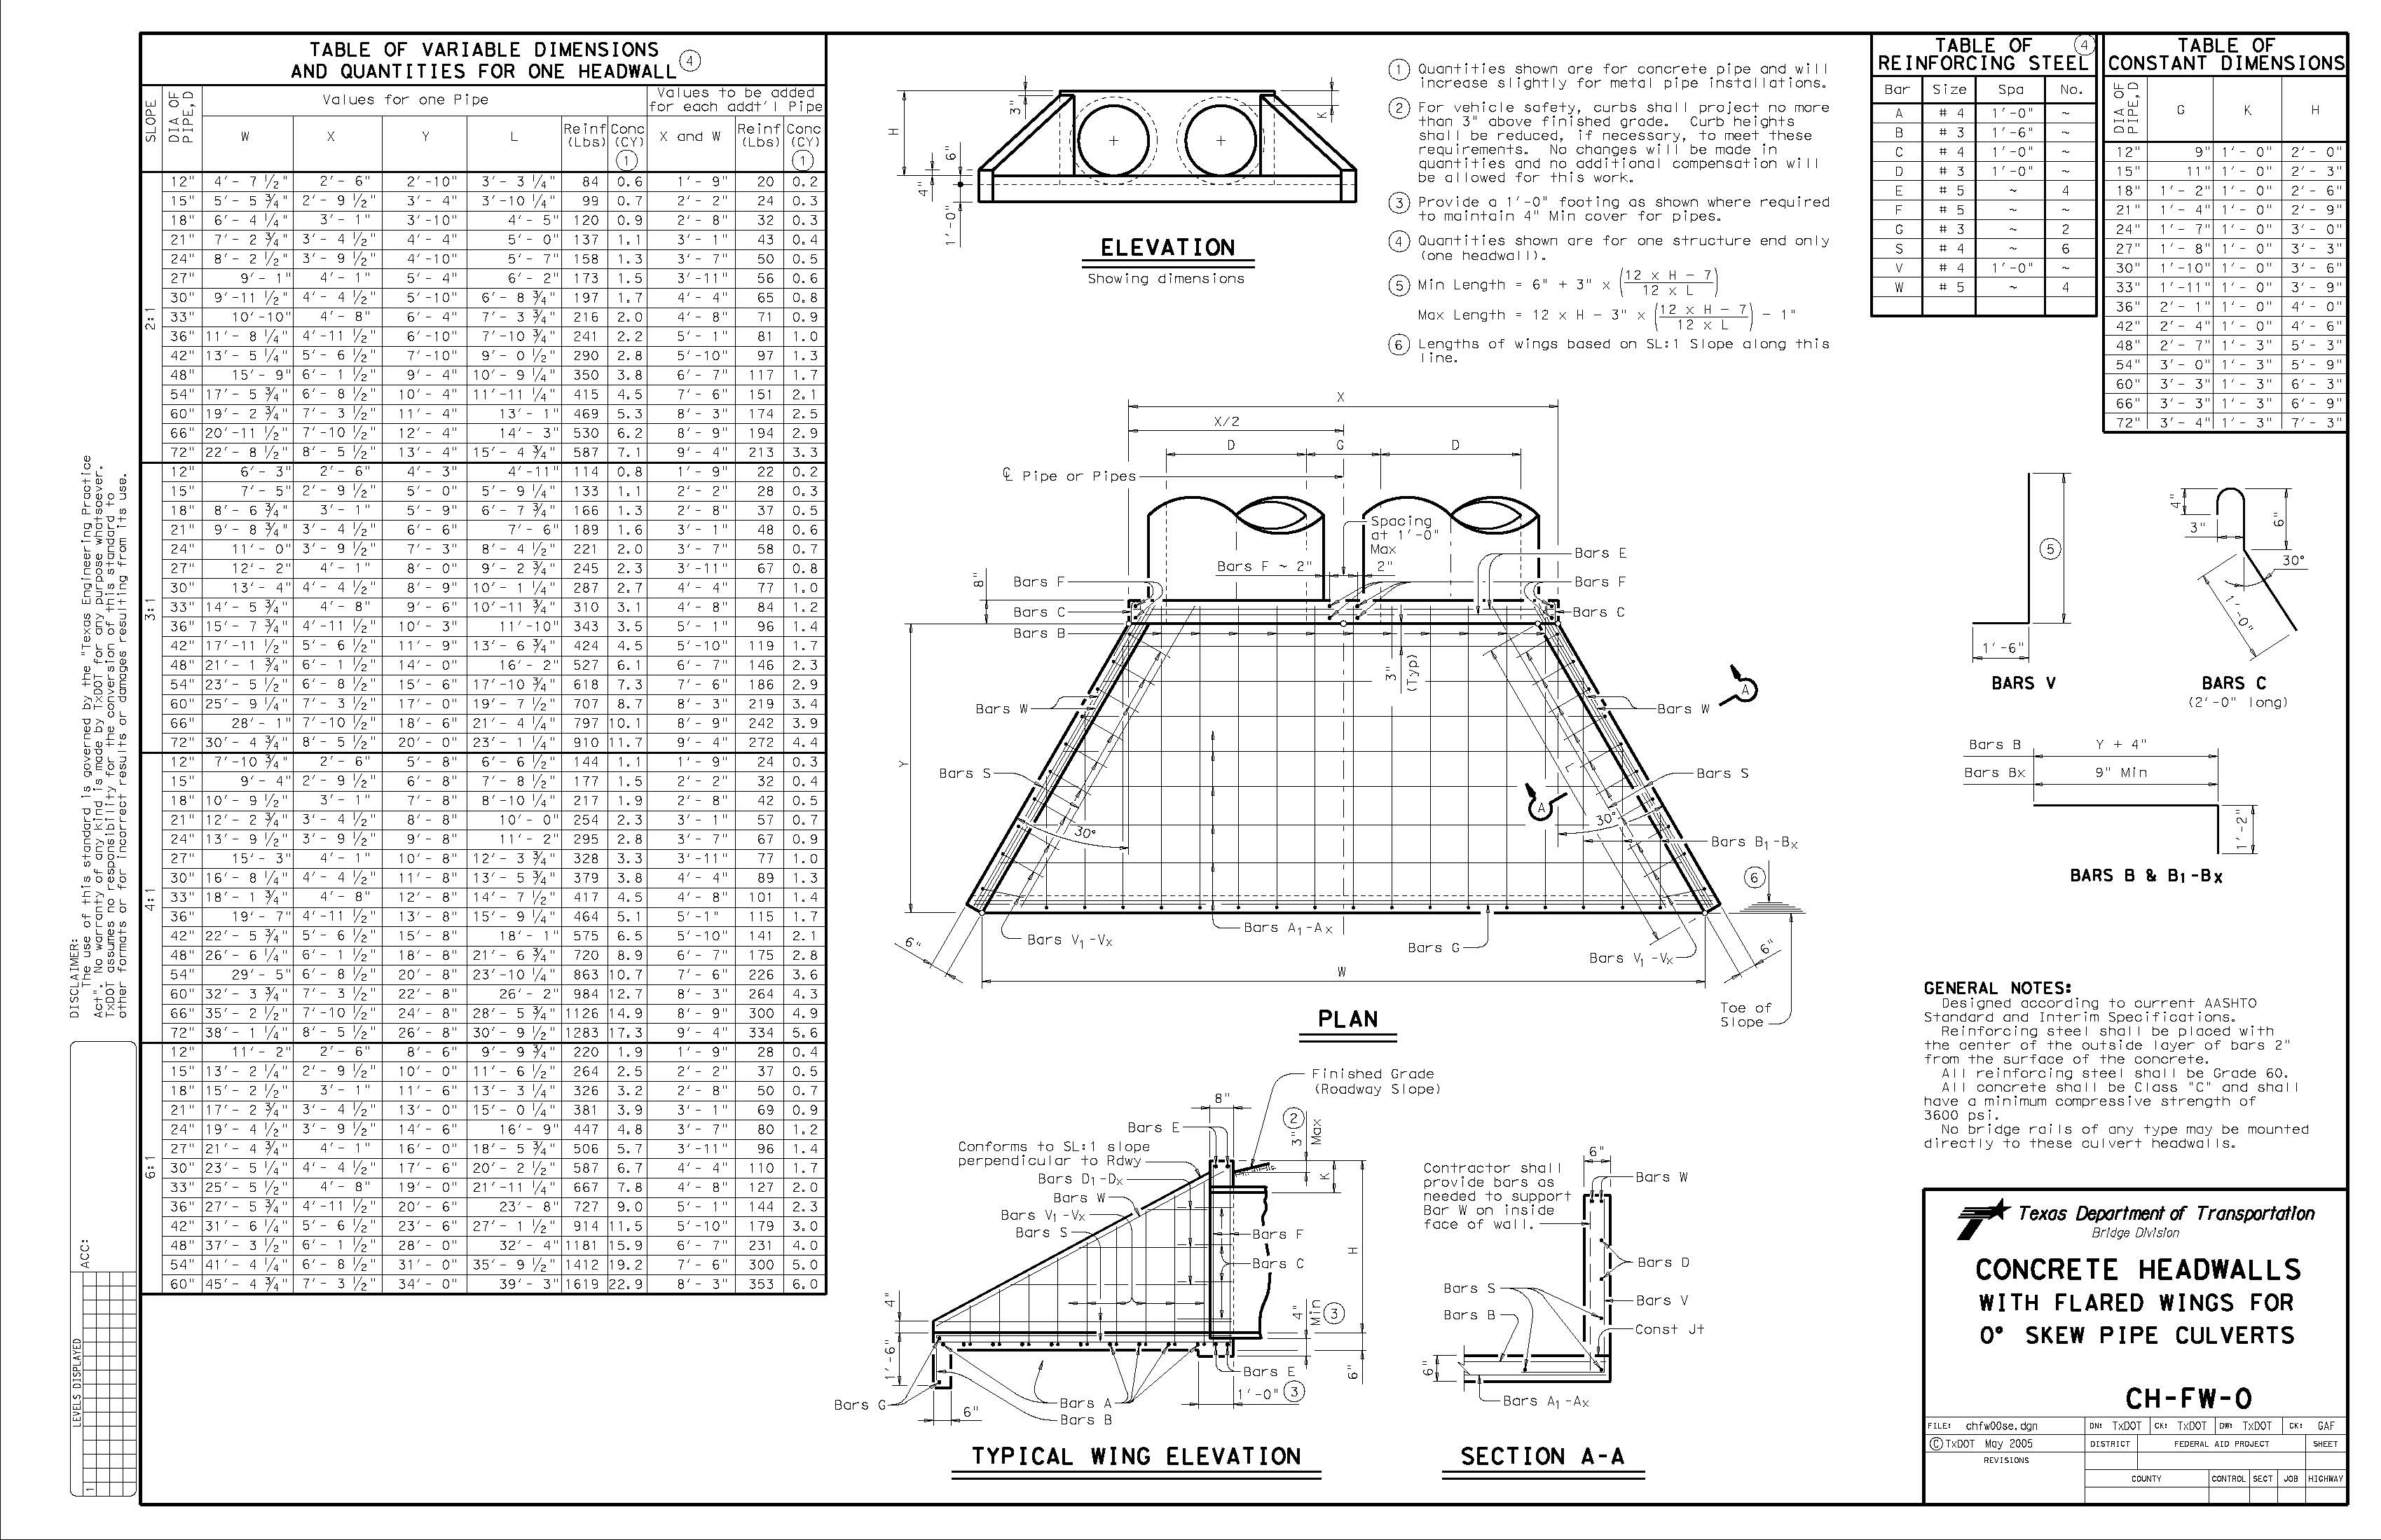 www rockwall com - /pz/ENGINEERING/Engineering Record Drawings_PDF